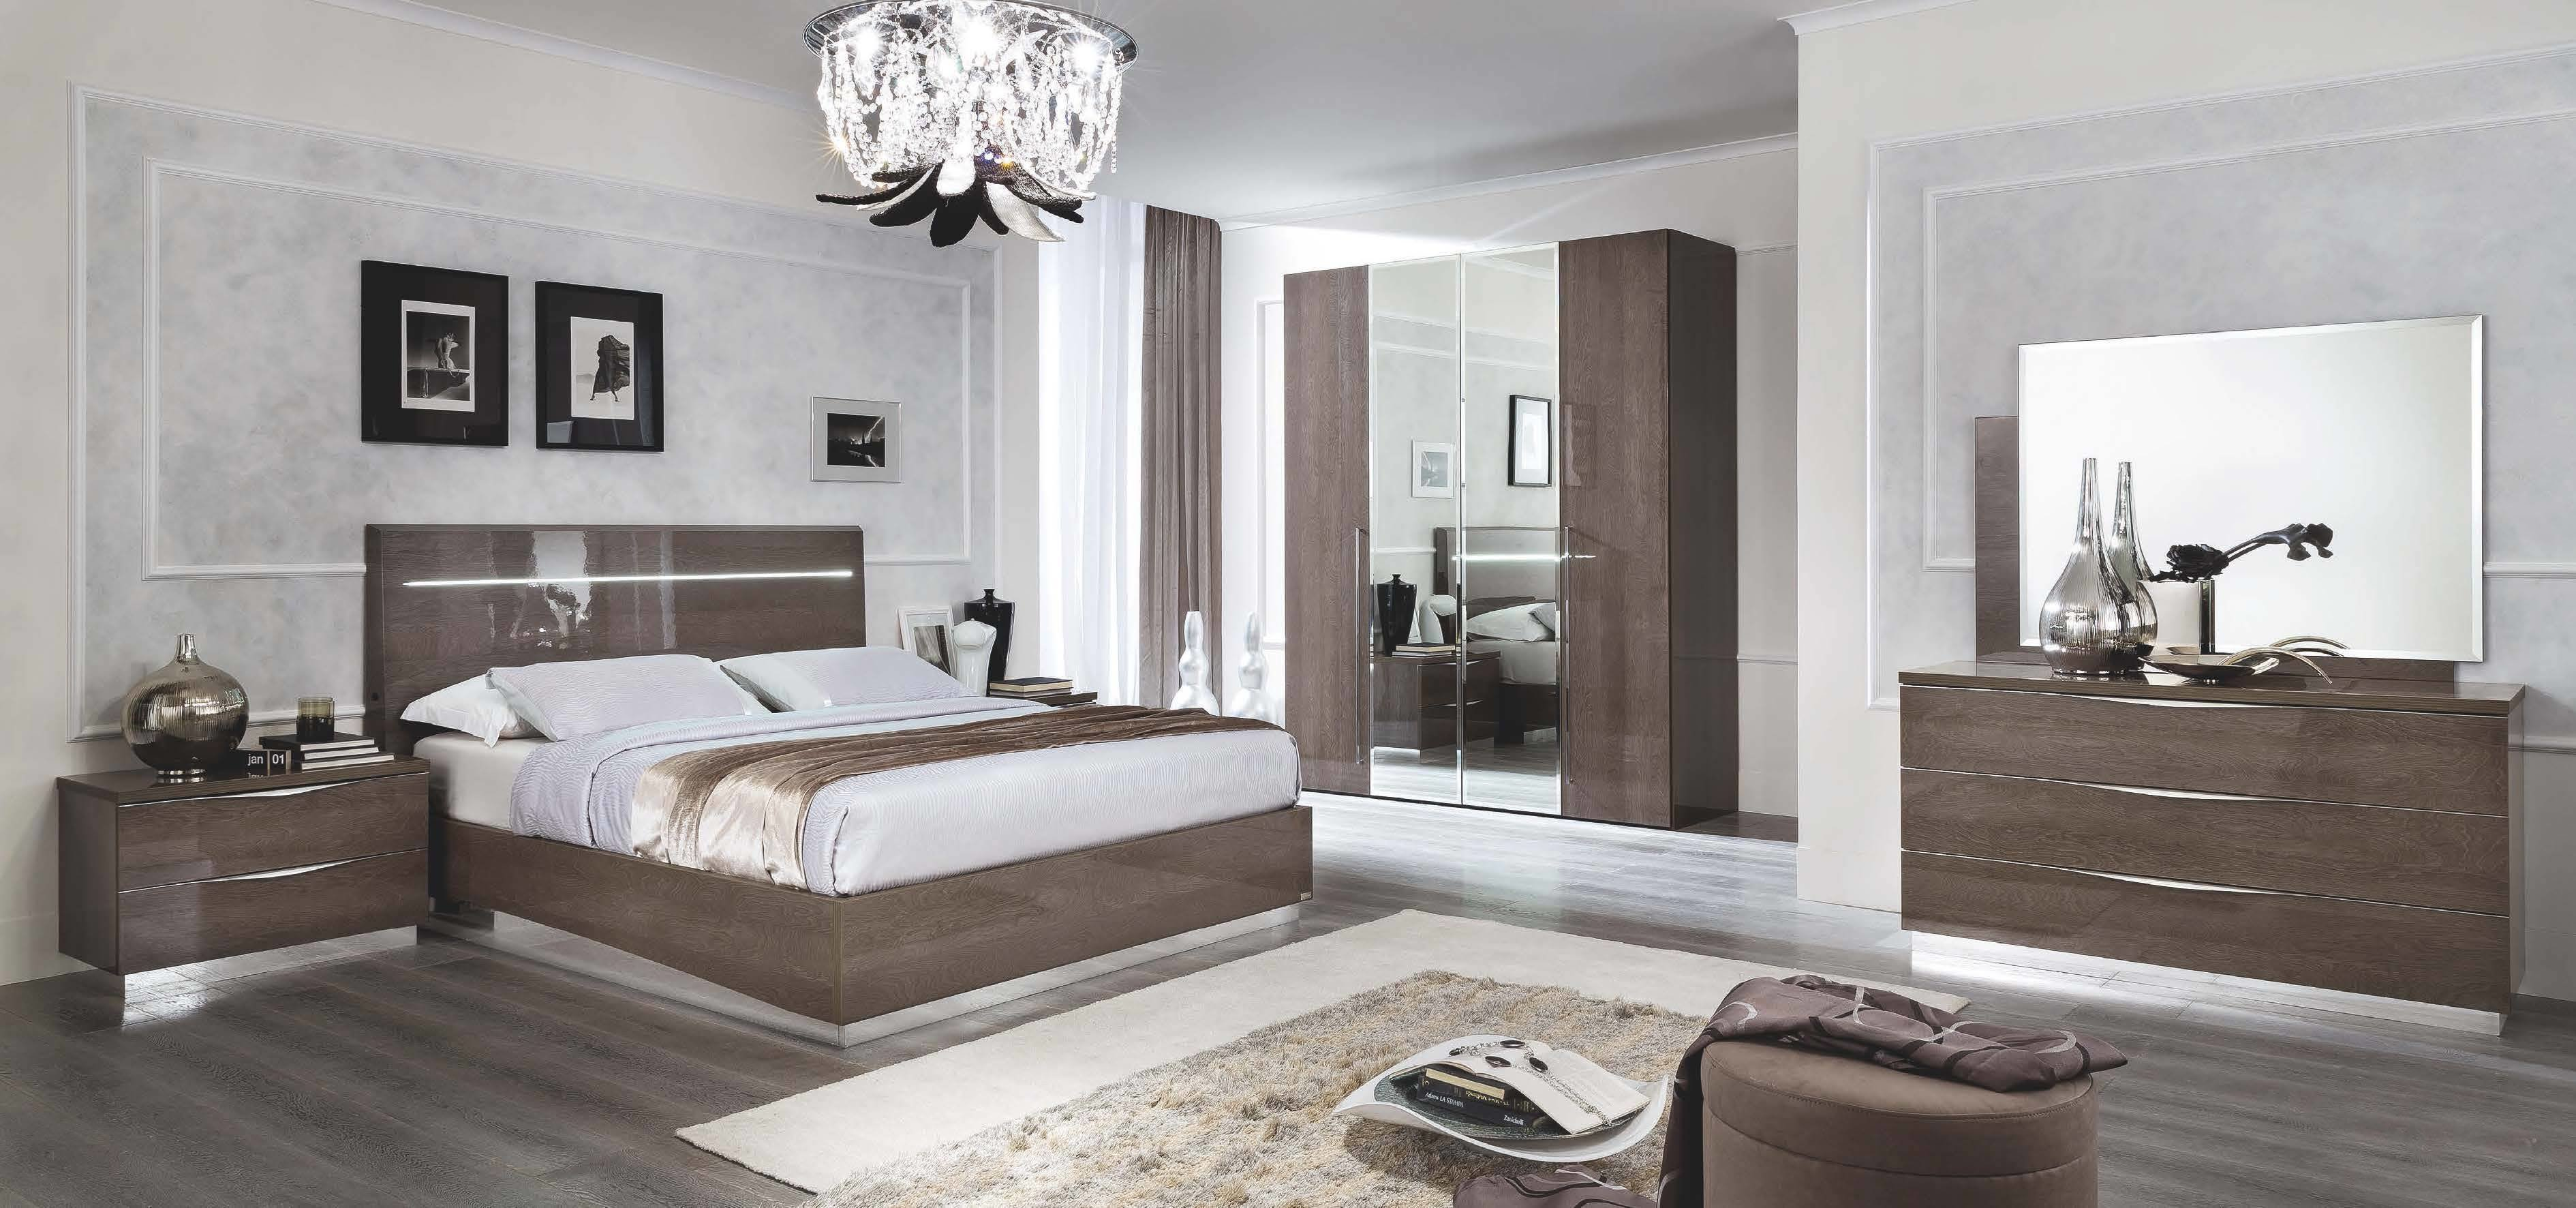 Best Made In Italy Quality High End Bedroom Sets San Jose California Camelgroup Platinum Silver Birch With Pictures